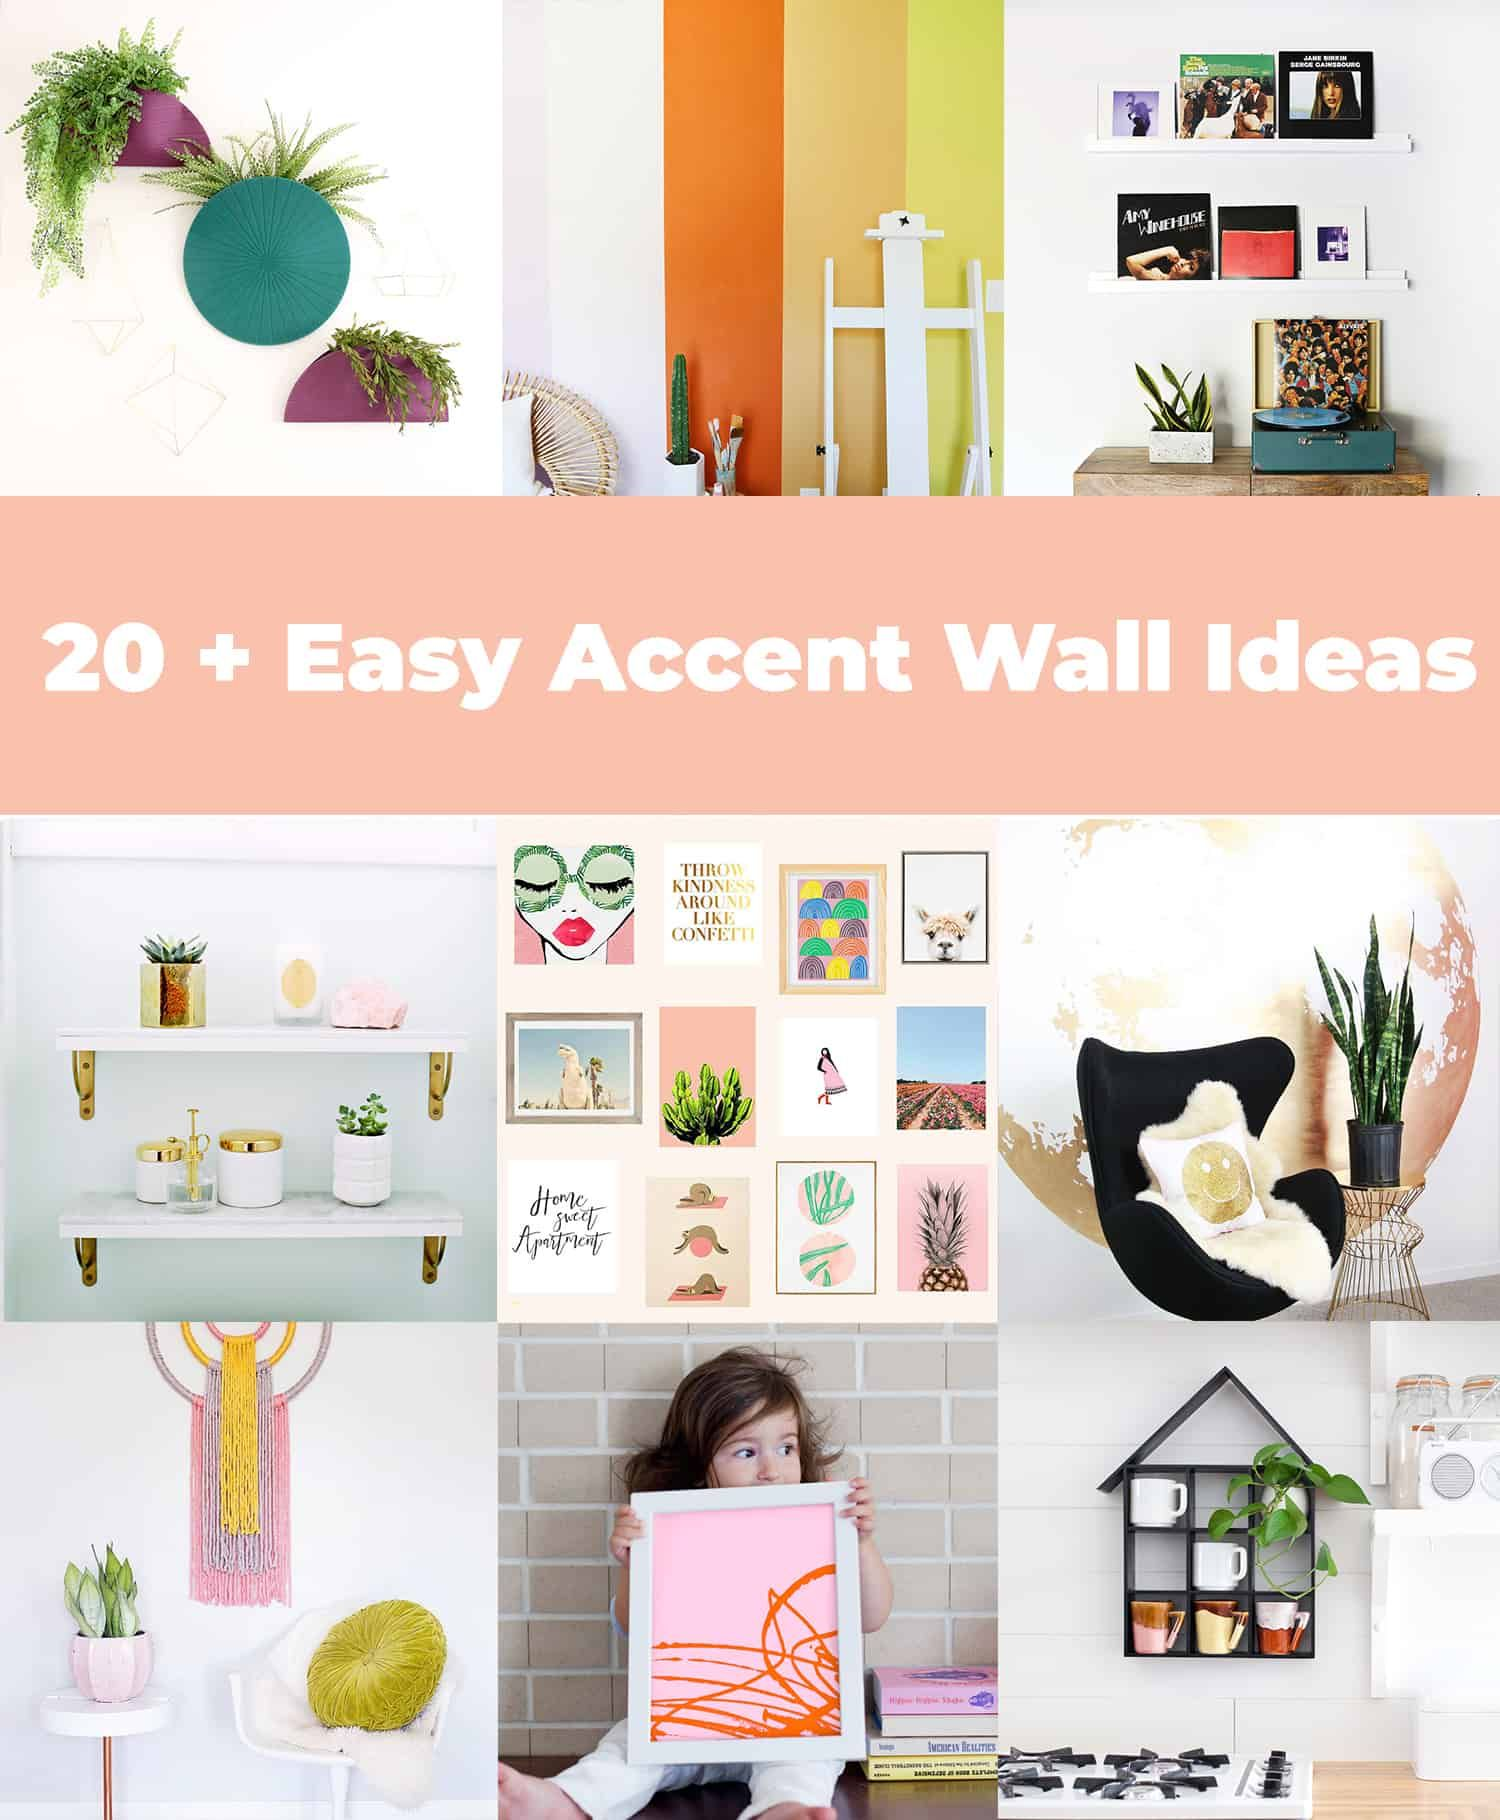 Easy Accent Wall: 20+ Easy Accent Wall Ideas